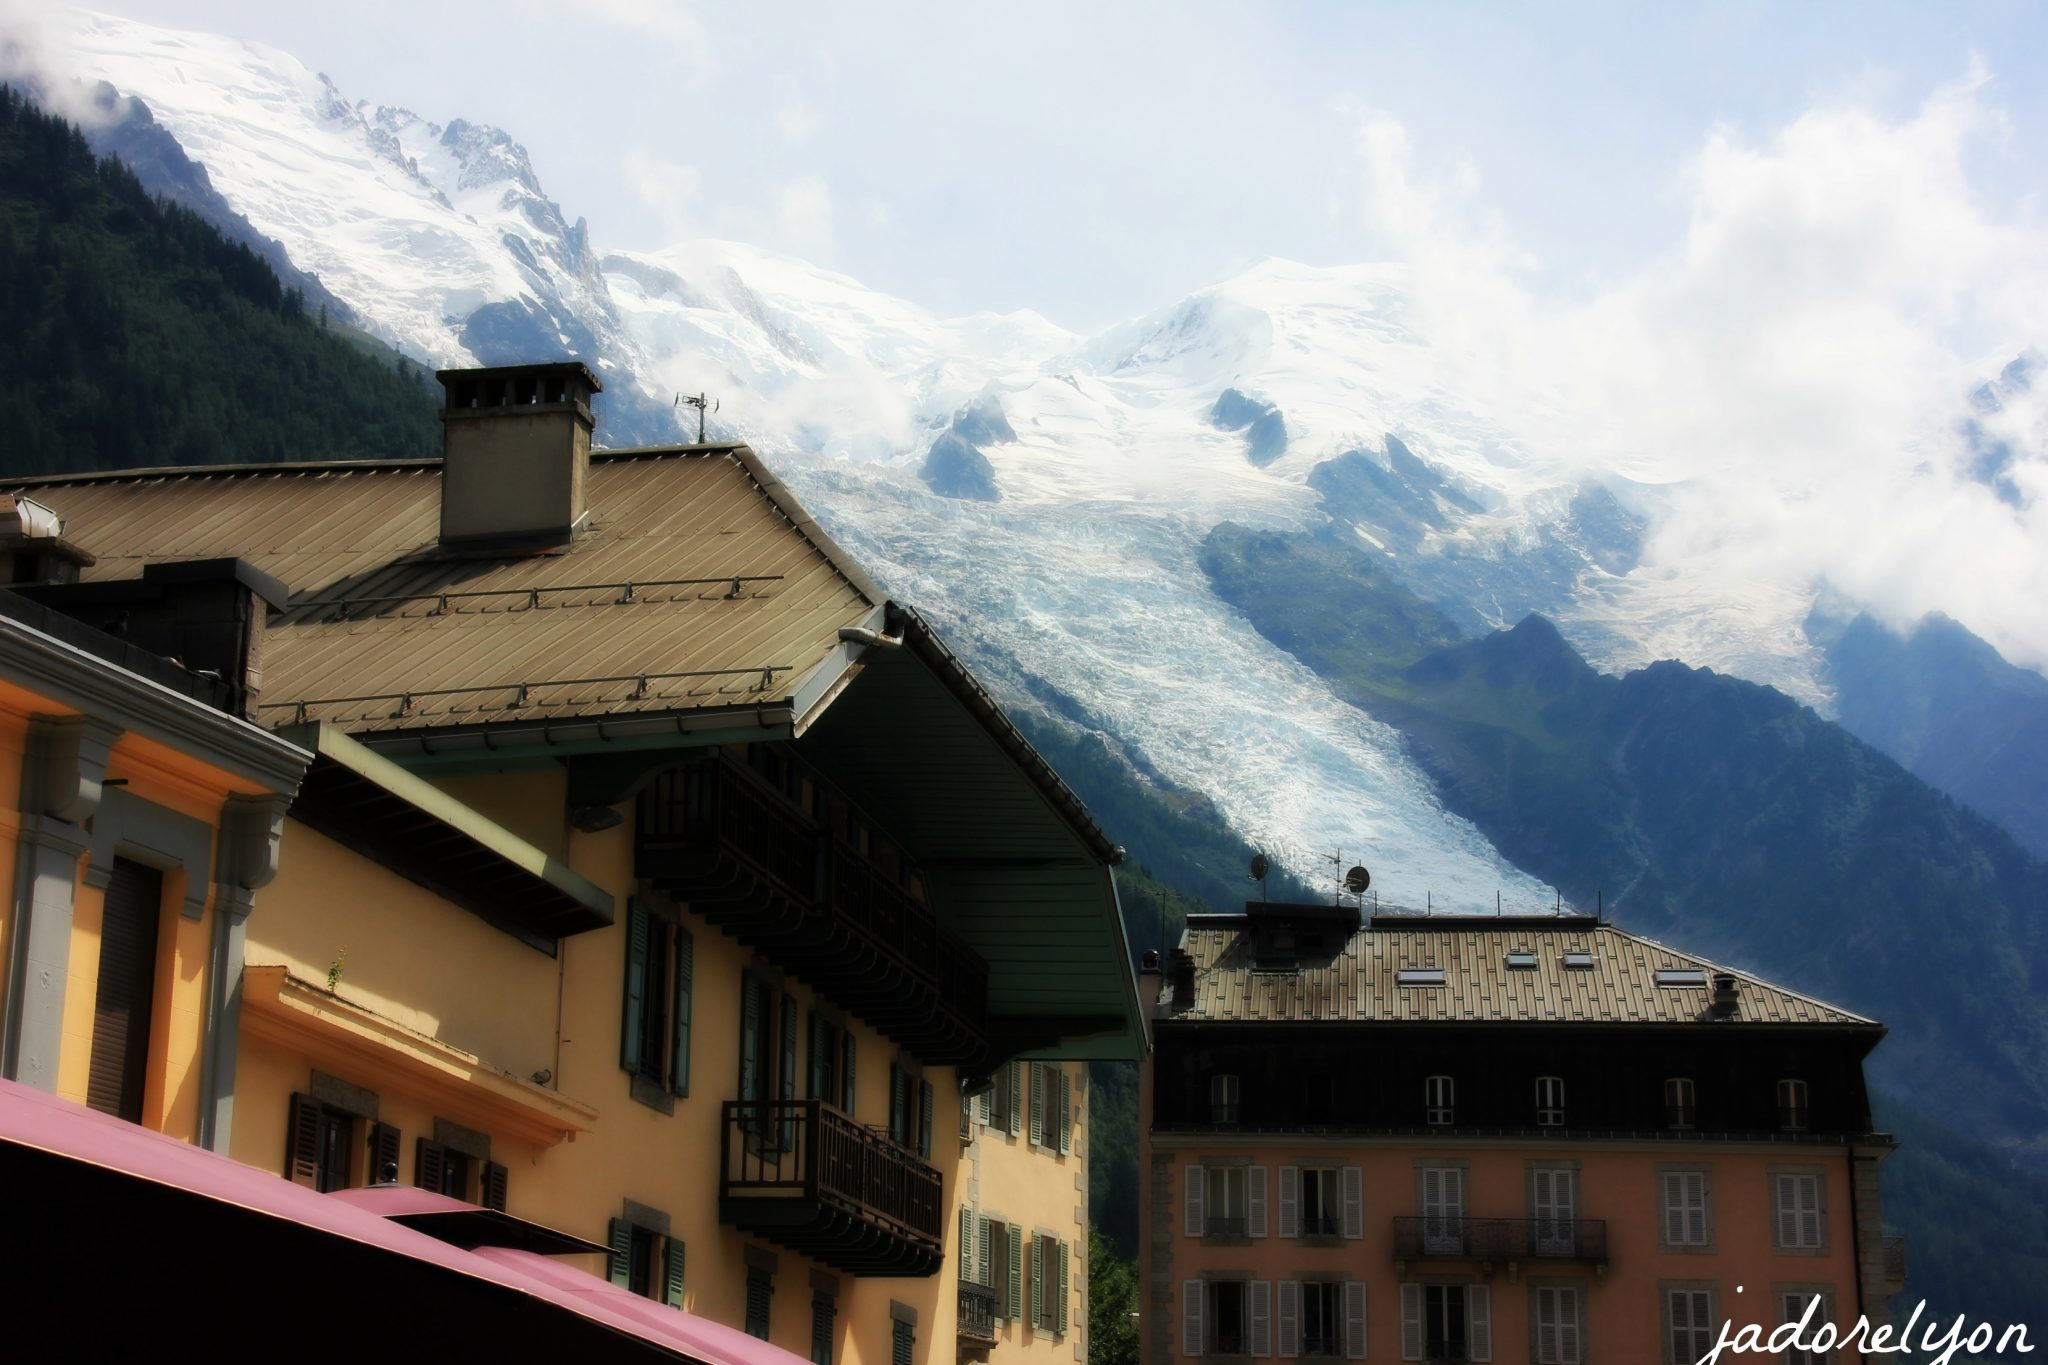 Because of the architecture of Chamonix